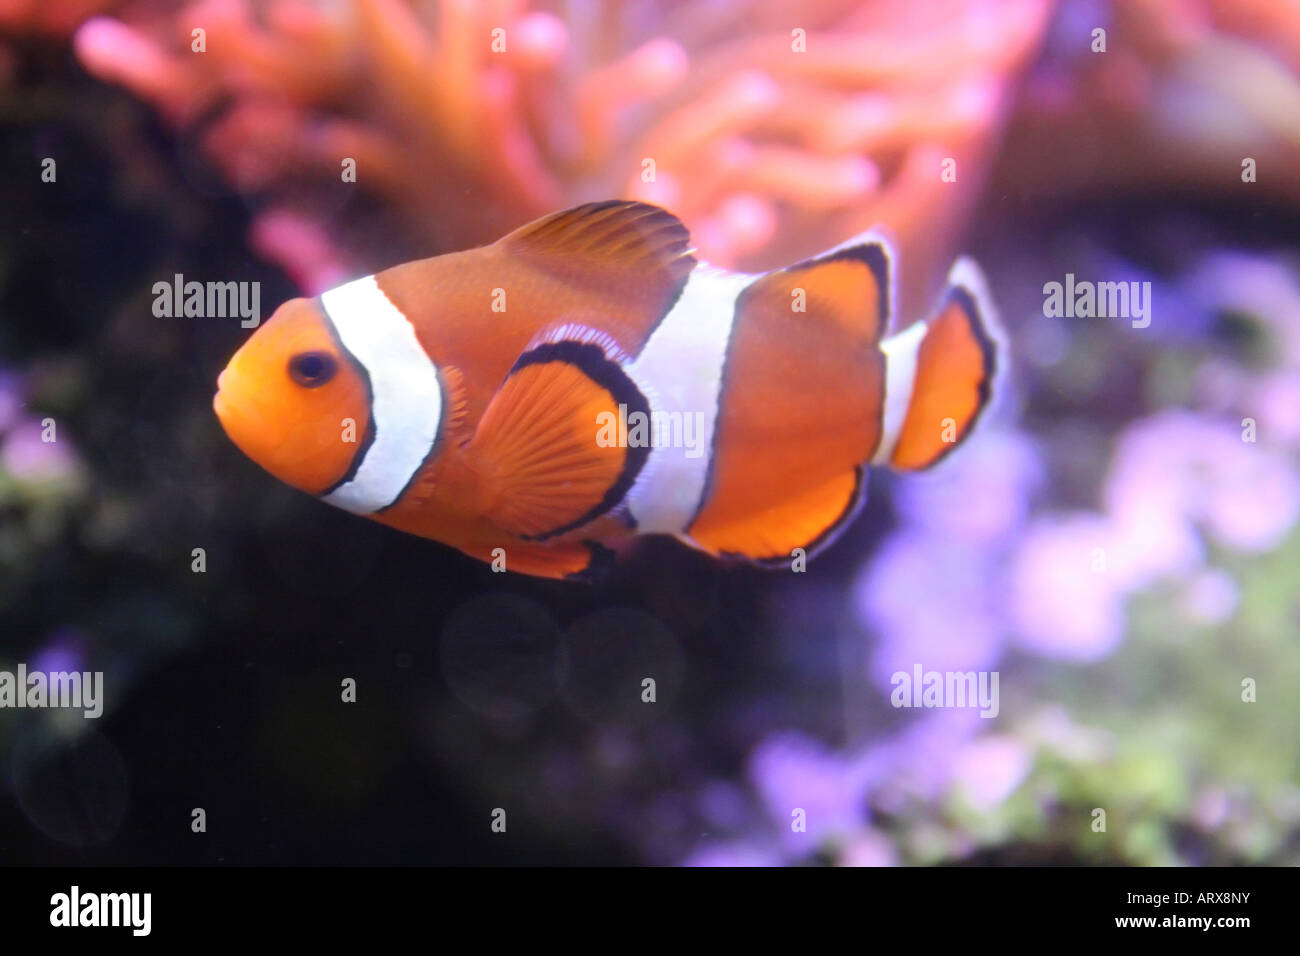 Amphiprion, nemo (klown) - fish Stock Photo: 16140806 - Alamy